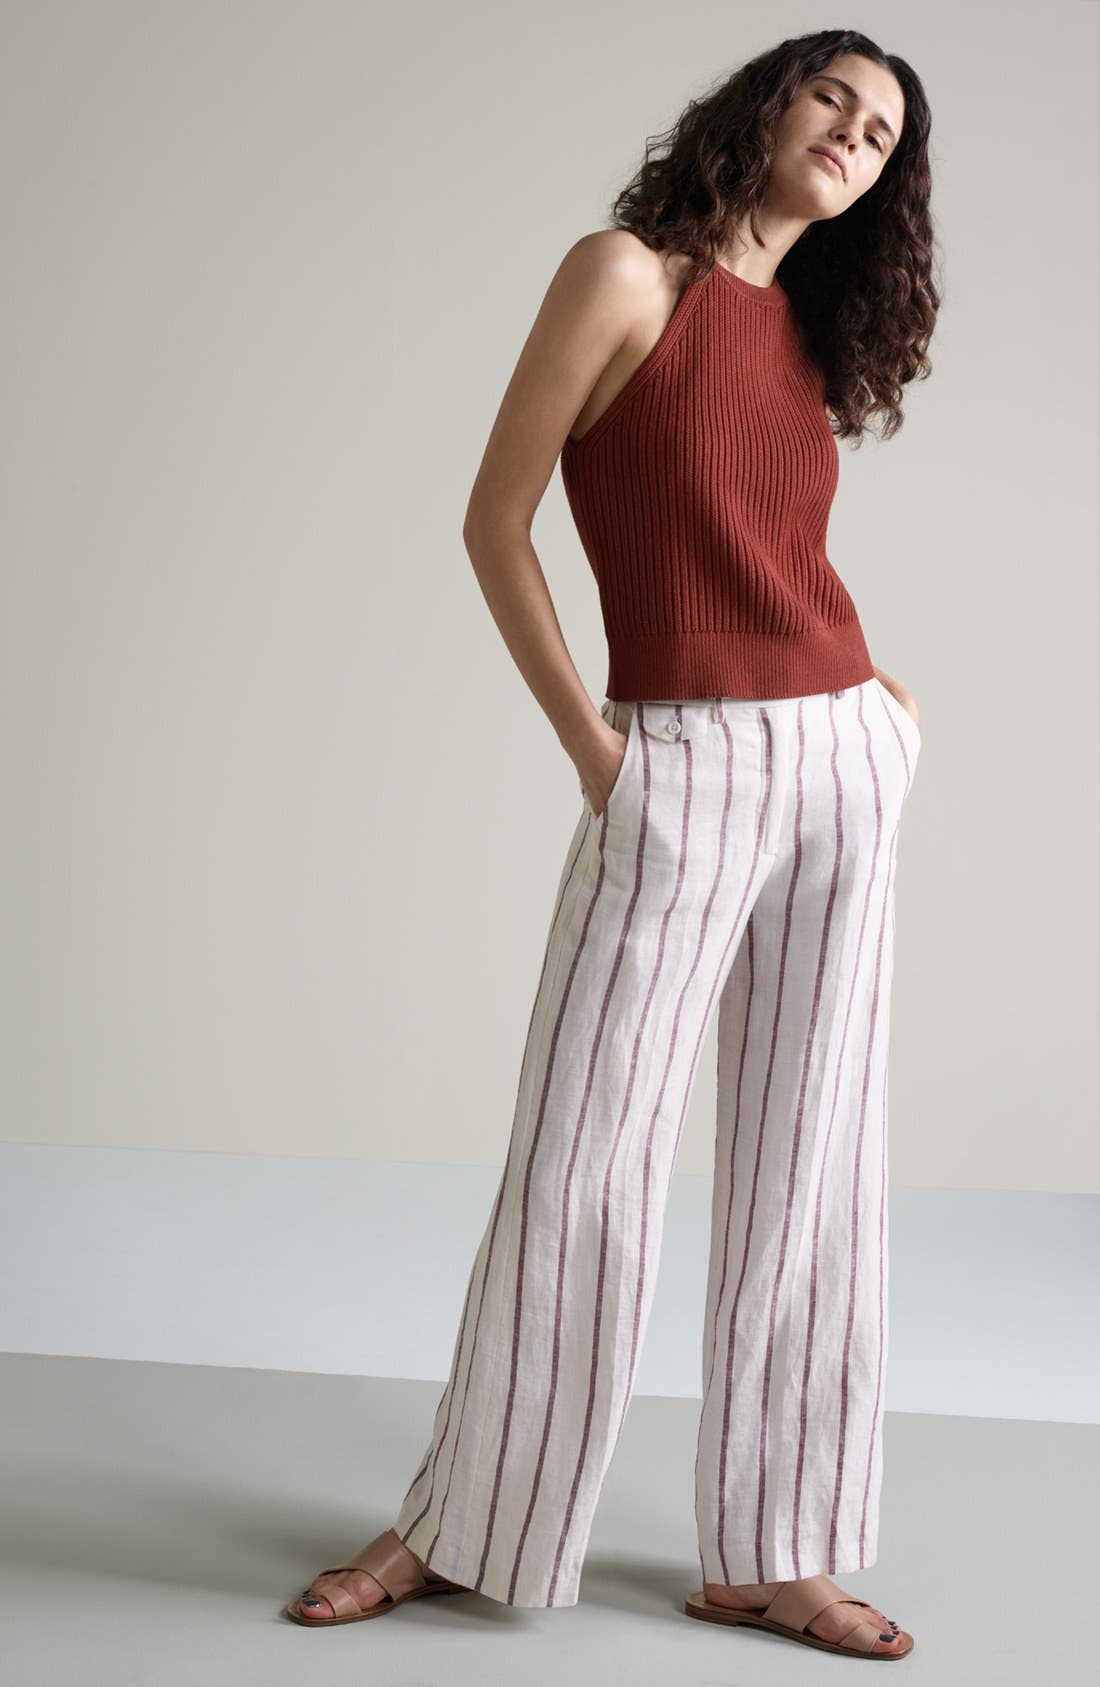 Theory Sweater & Pants Outfit with Accessories